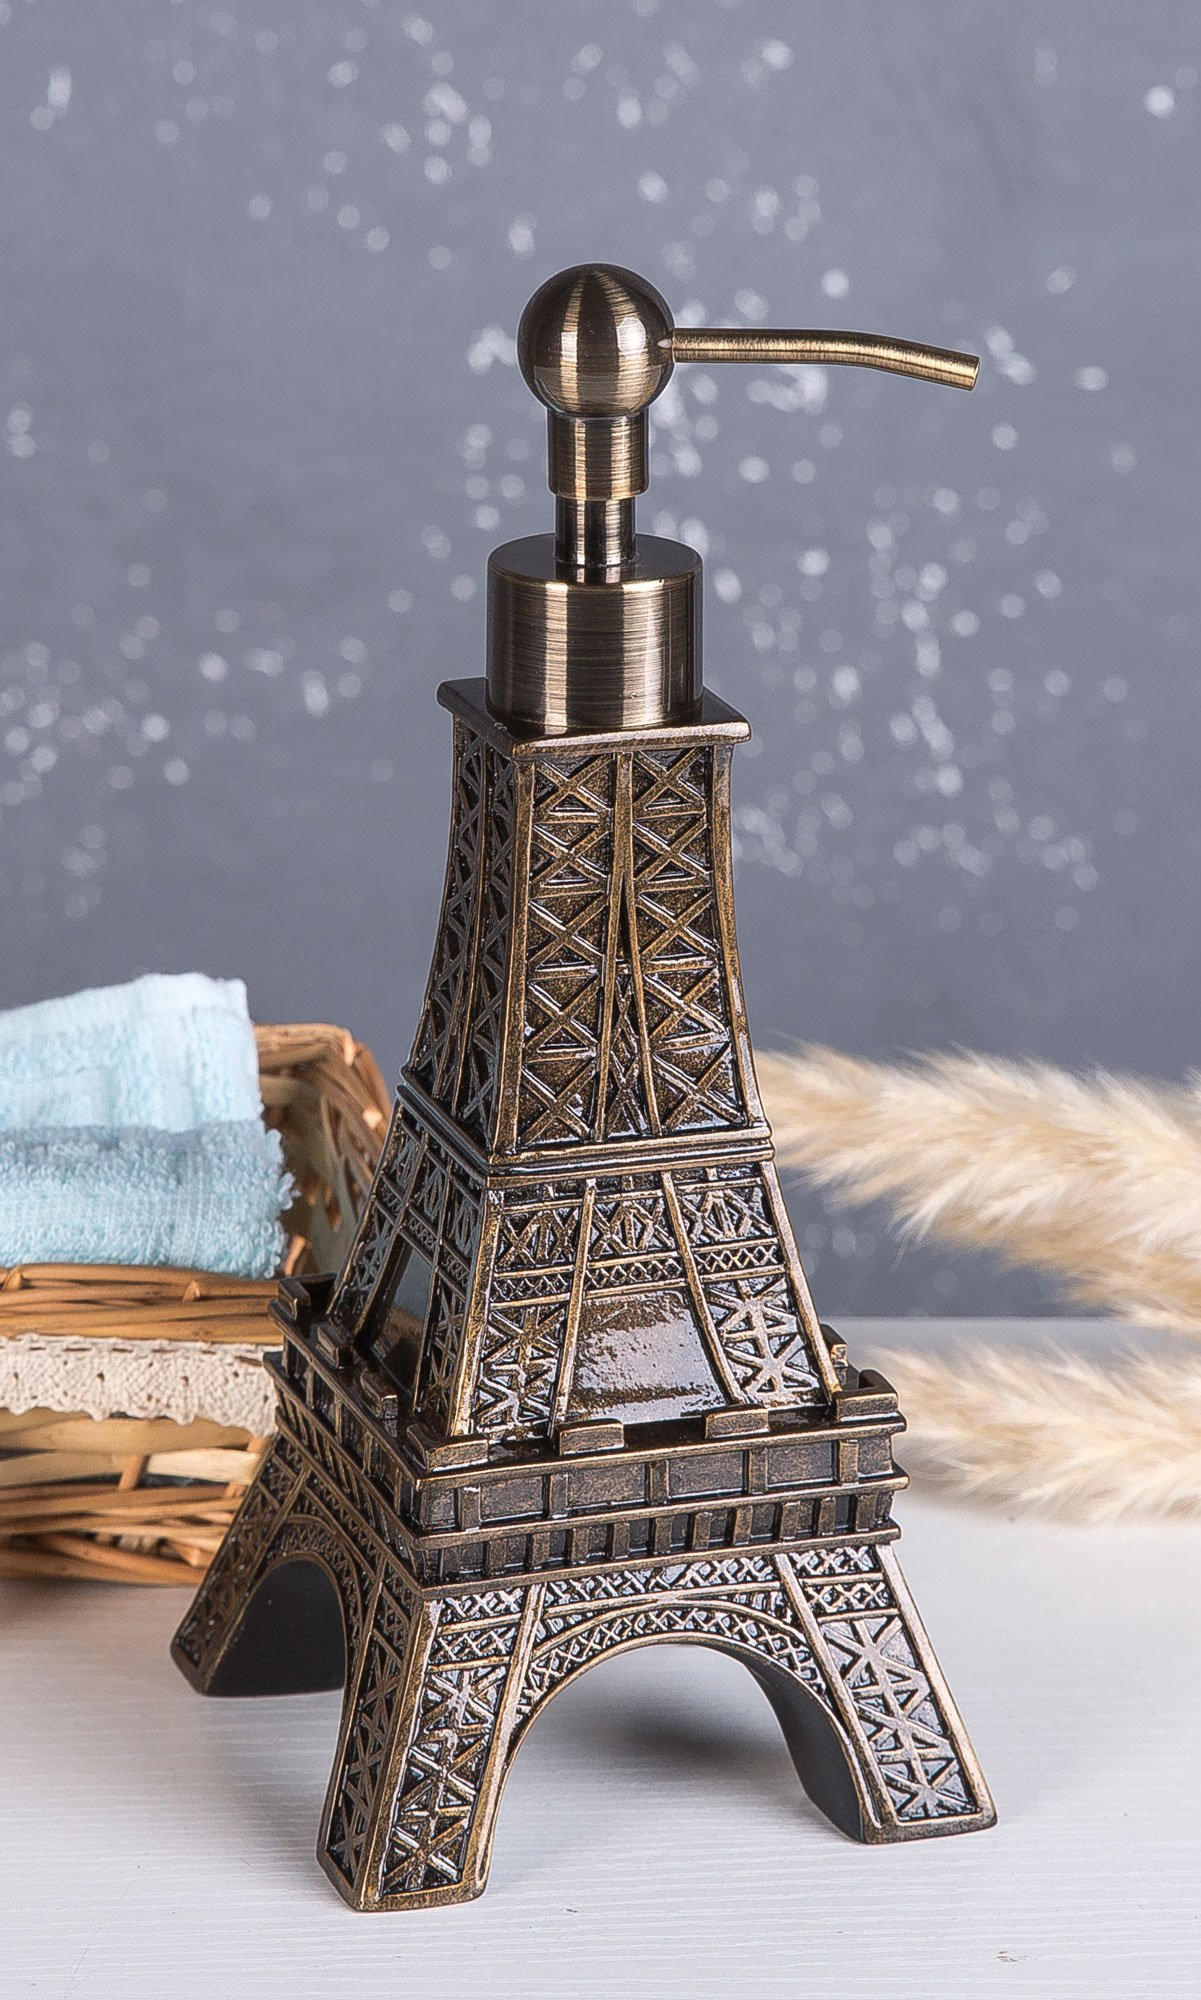 SILOKO 3D Eiffel Tower Metal Pump Soap Dispenser for Kitchen or Bathroom Bronze by SILOKO (Image #6)